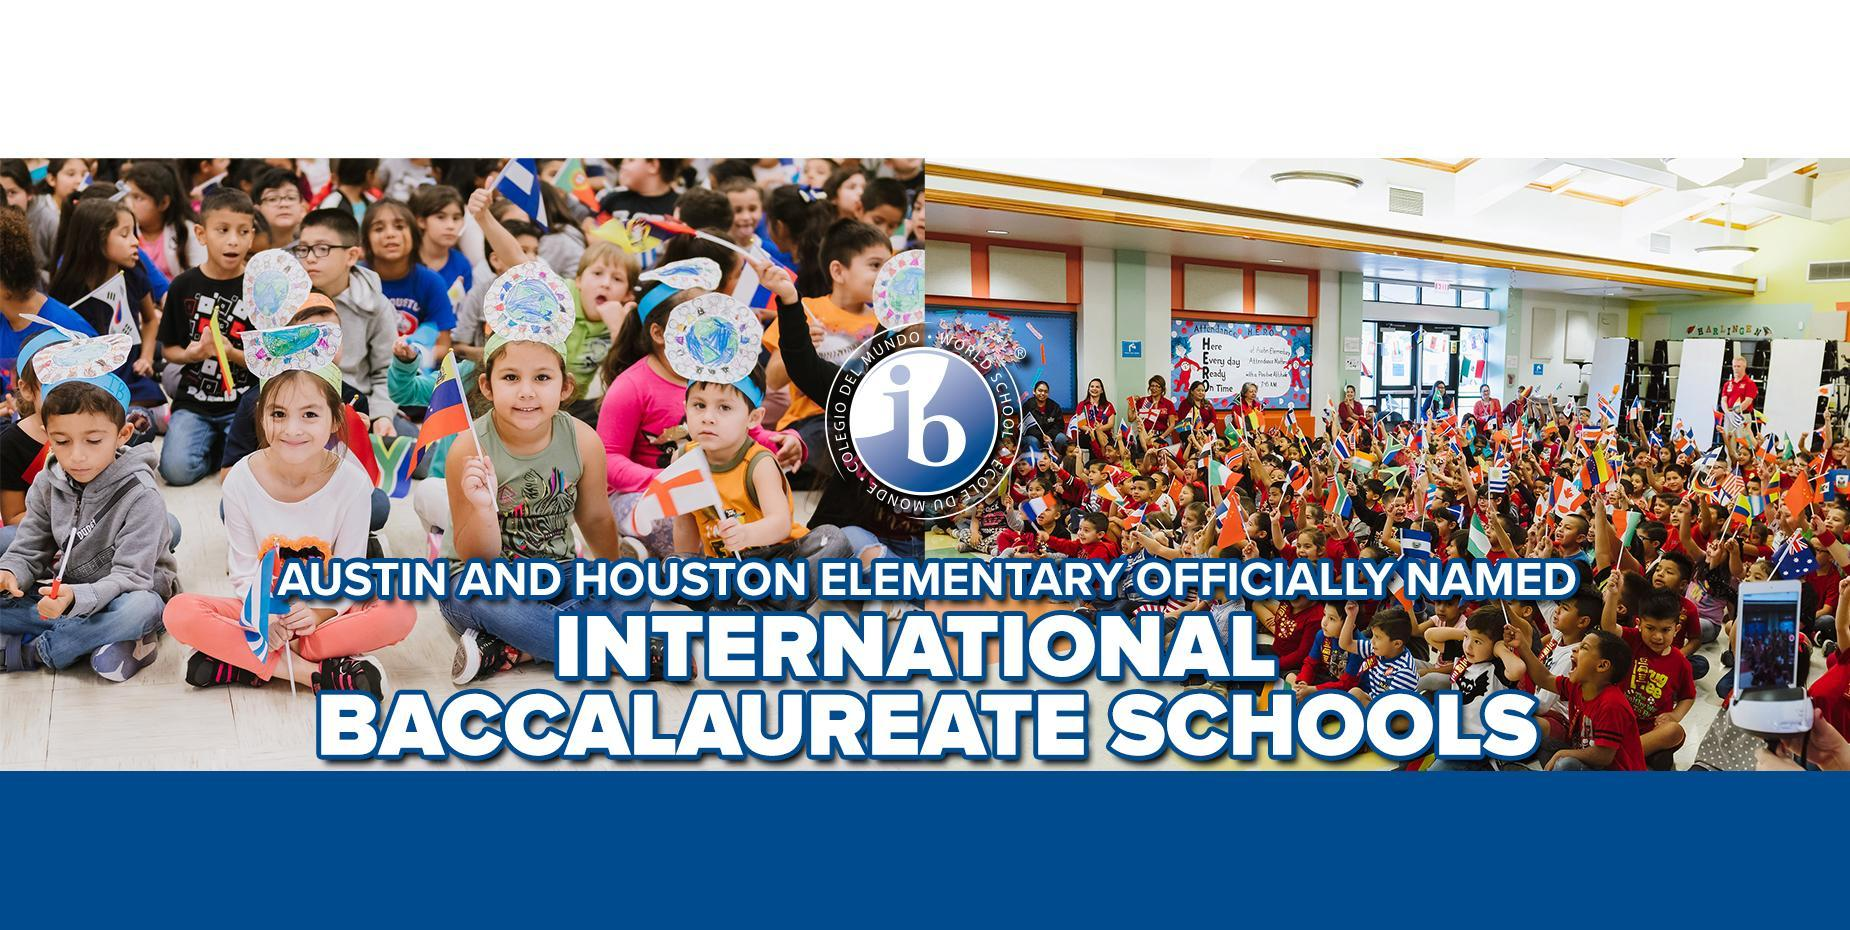 Austin and Houston Elementary officially named International Baccalaureate Schools